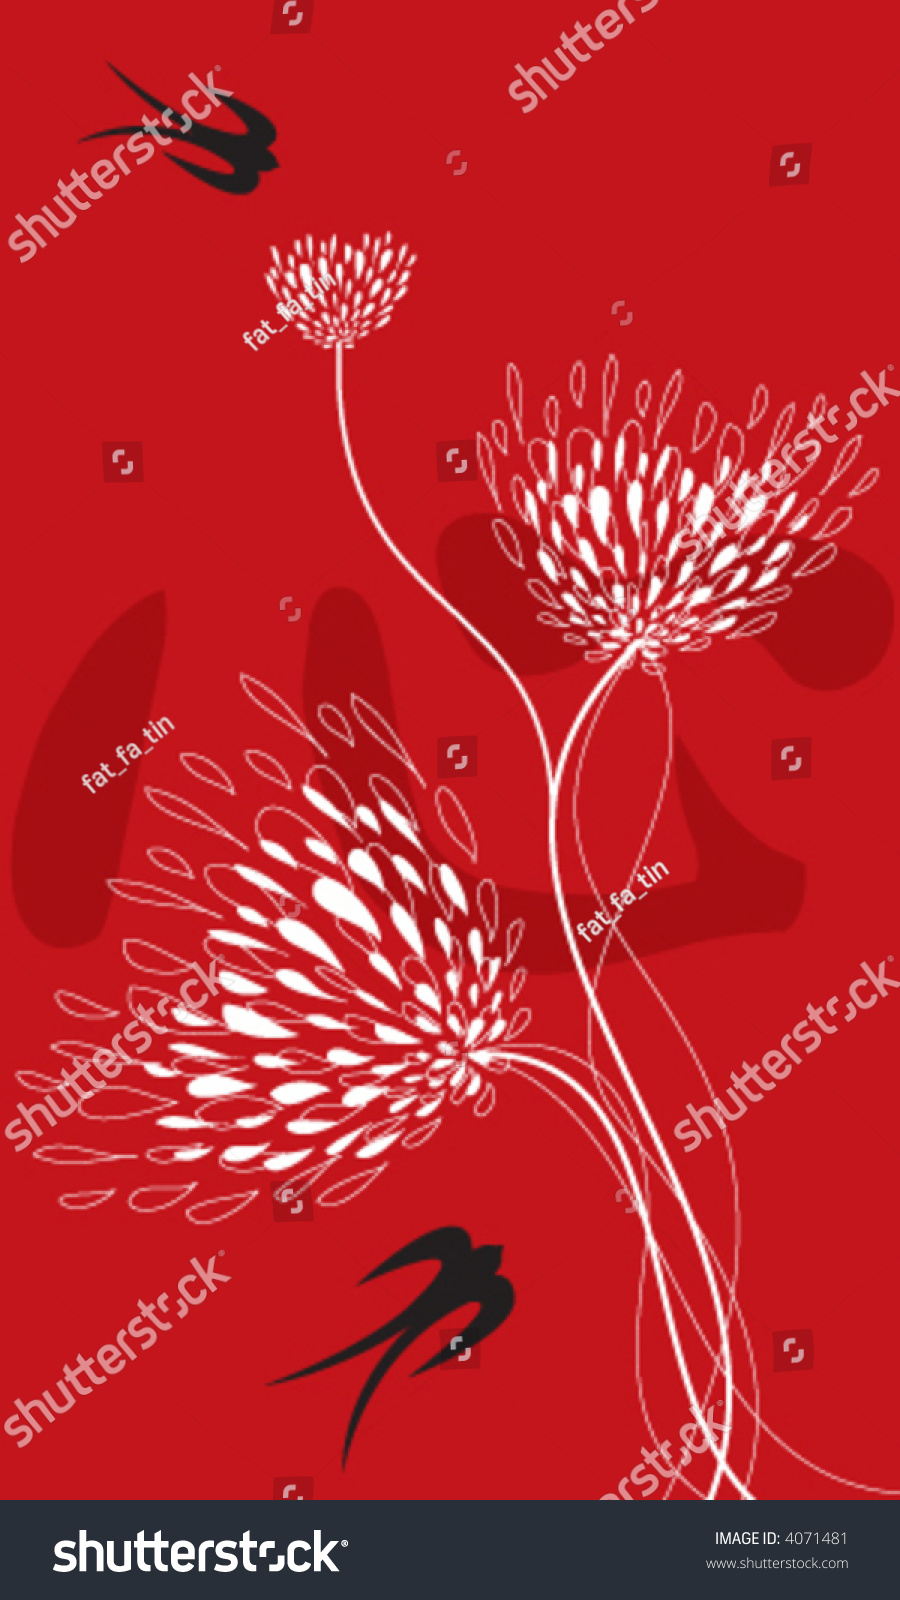 Lace Flowers Swallows On Red Vector Stock Vector (Royalty